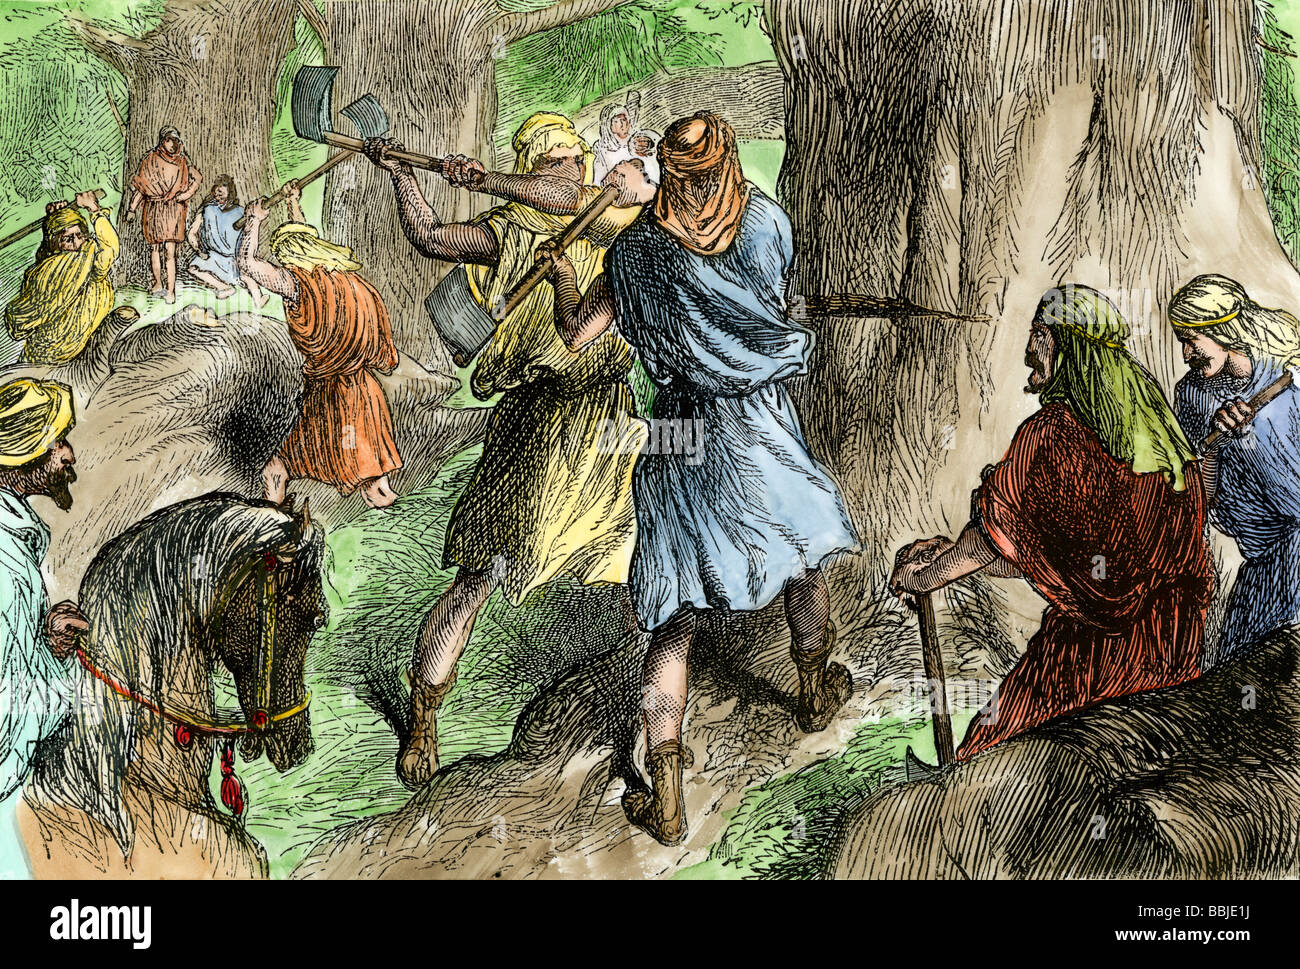 Solomon's servants hewing the cedars of Lebanon to build the Hebrew temple in Jerusalem. Hand-colored woodcut - Stock Image